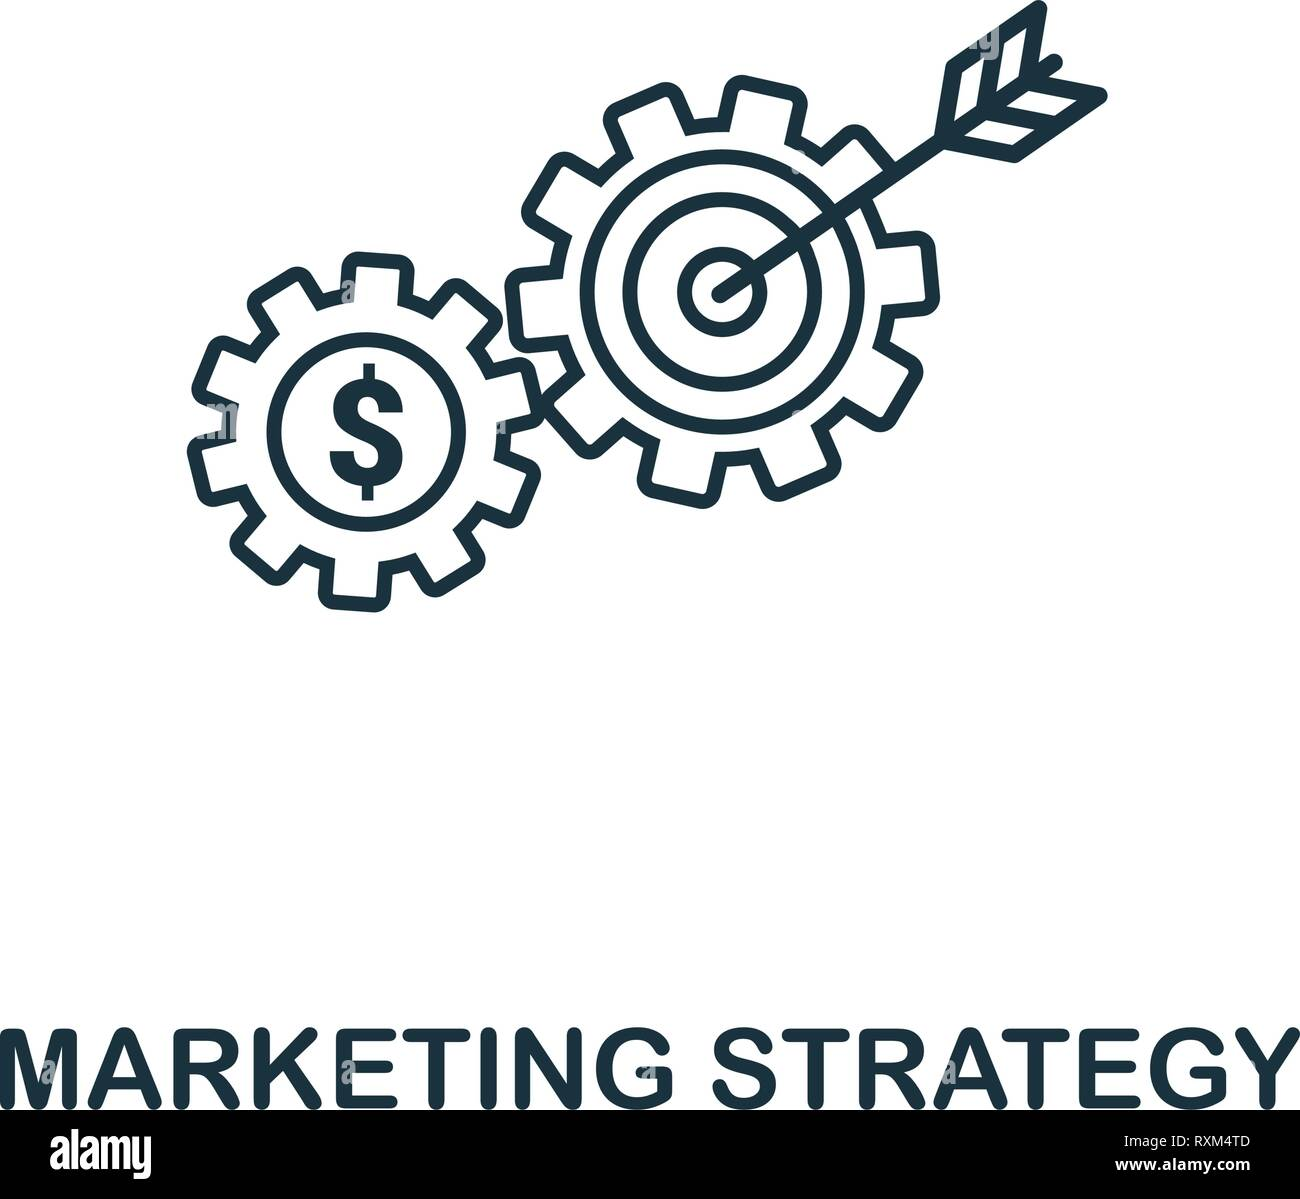 Marketing Strategy icon thin line style. Symbol from online marketing icons collection. Outline marketing strategy icon for web design, apps, software Stock Vector